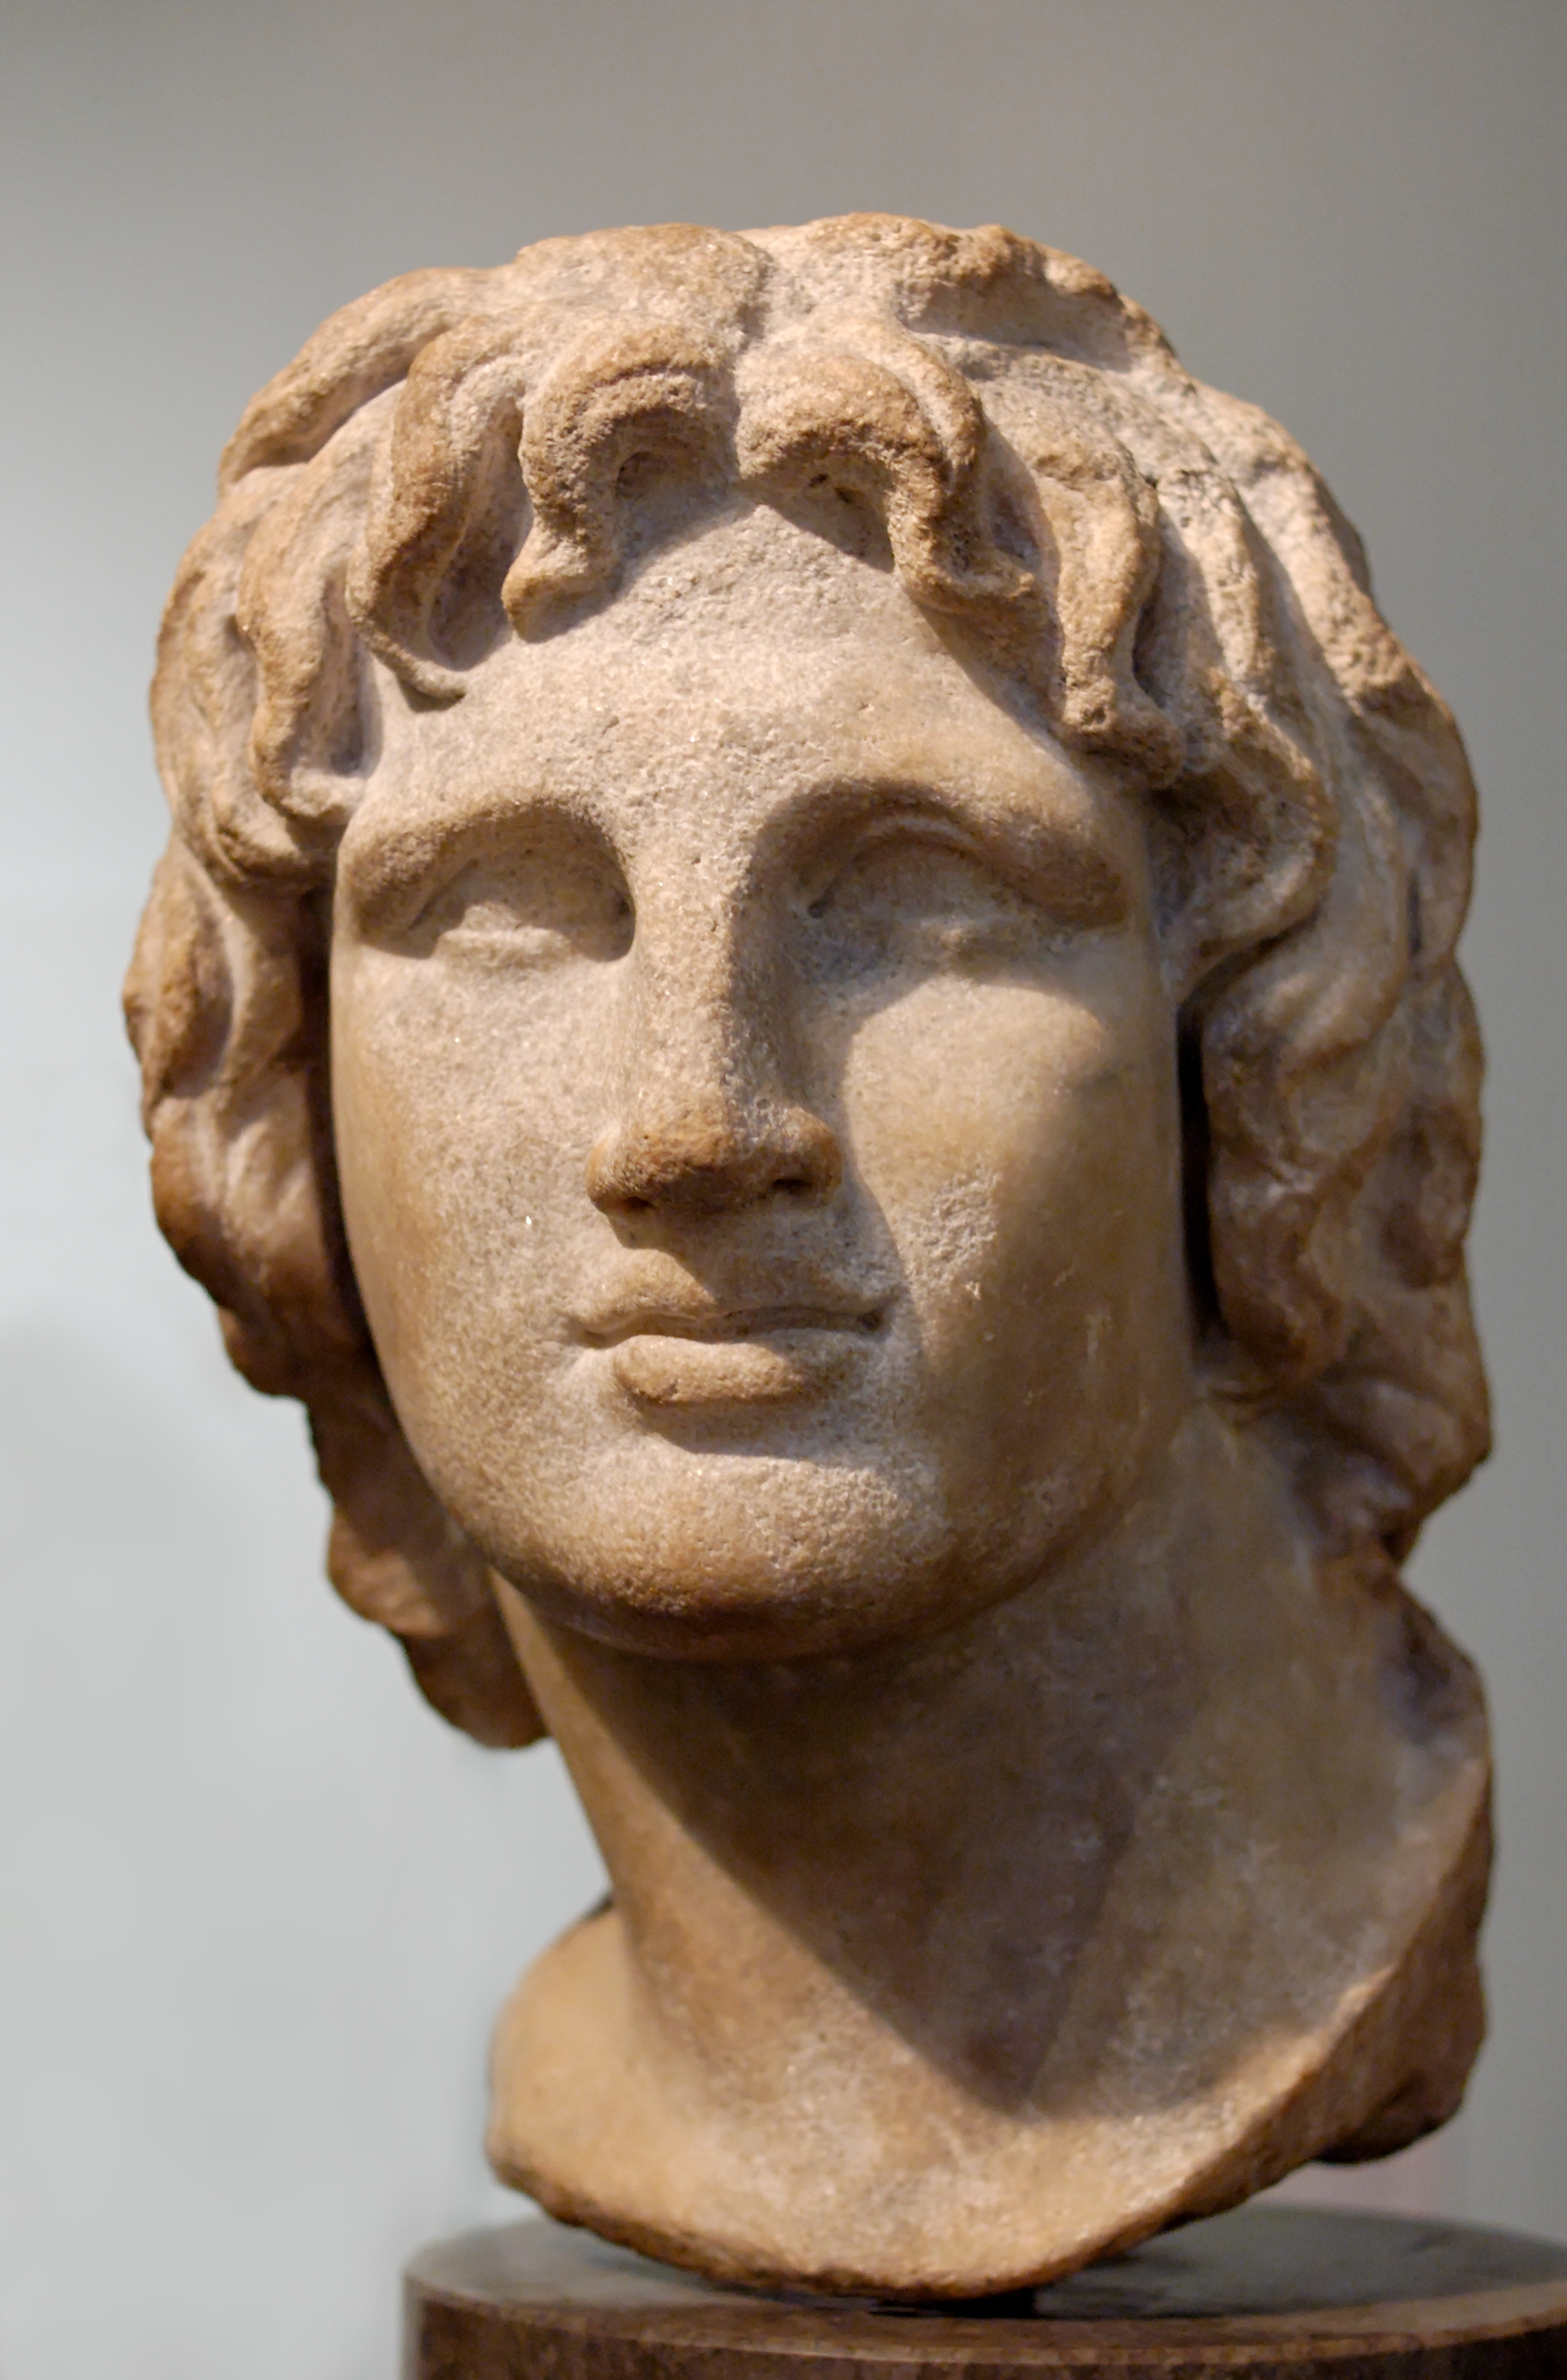 http://upload.wikimedia.org/wikipedia/commons/6/62/Bust_Alexander_BM_1857.jpg